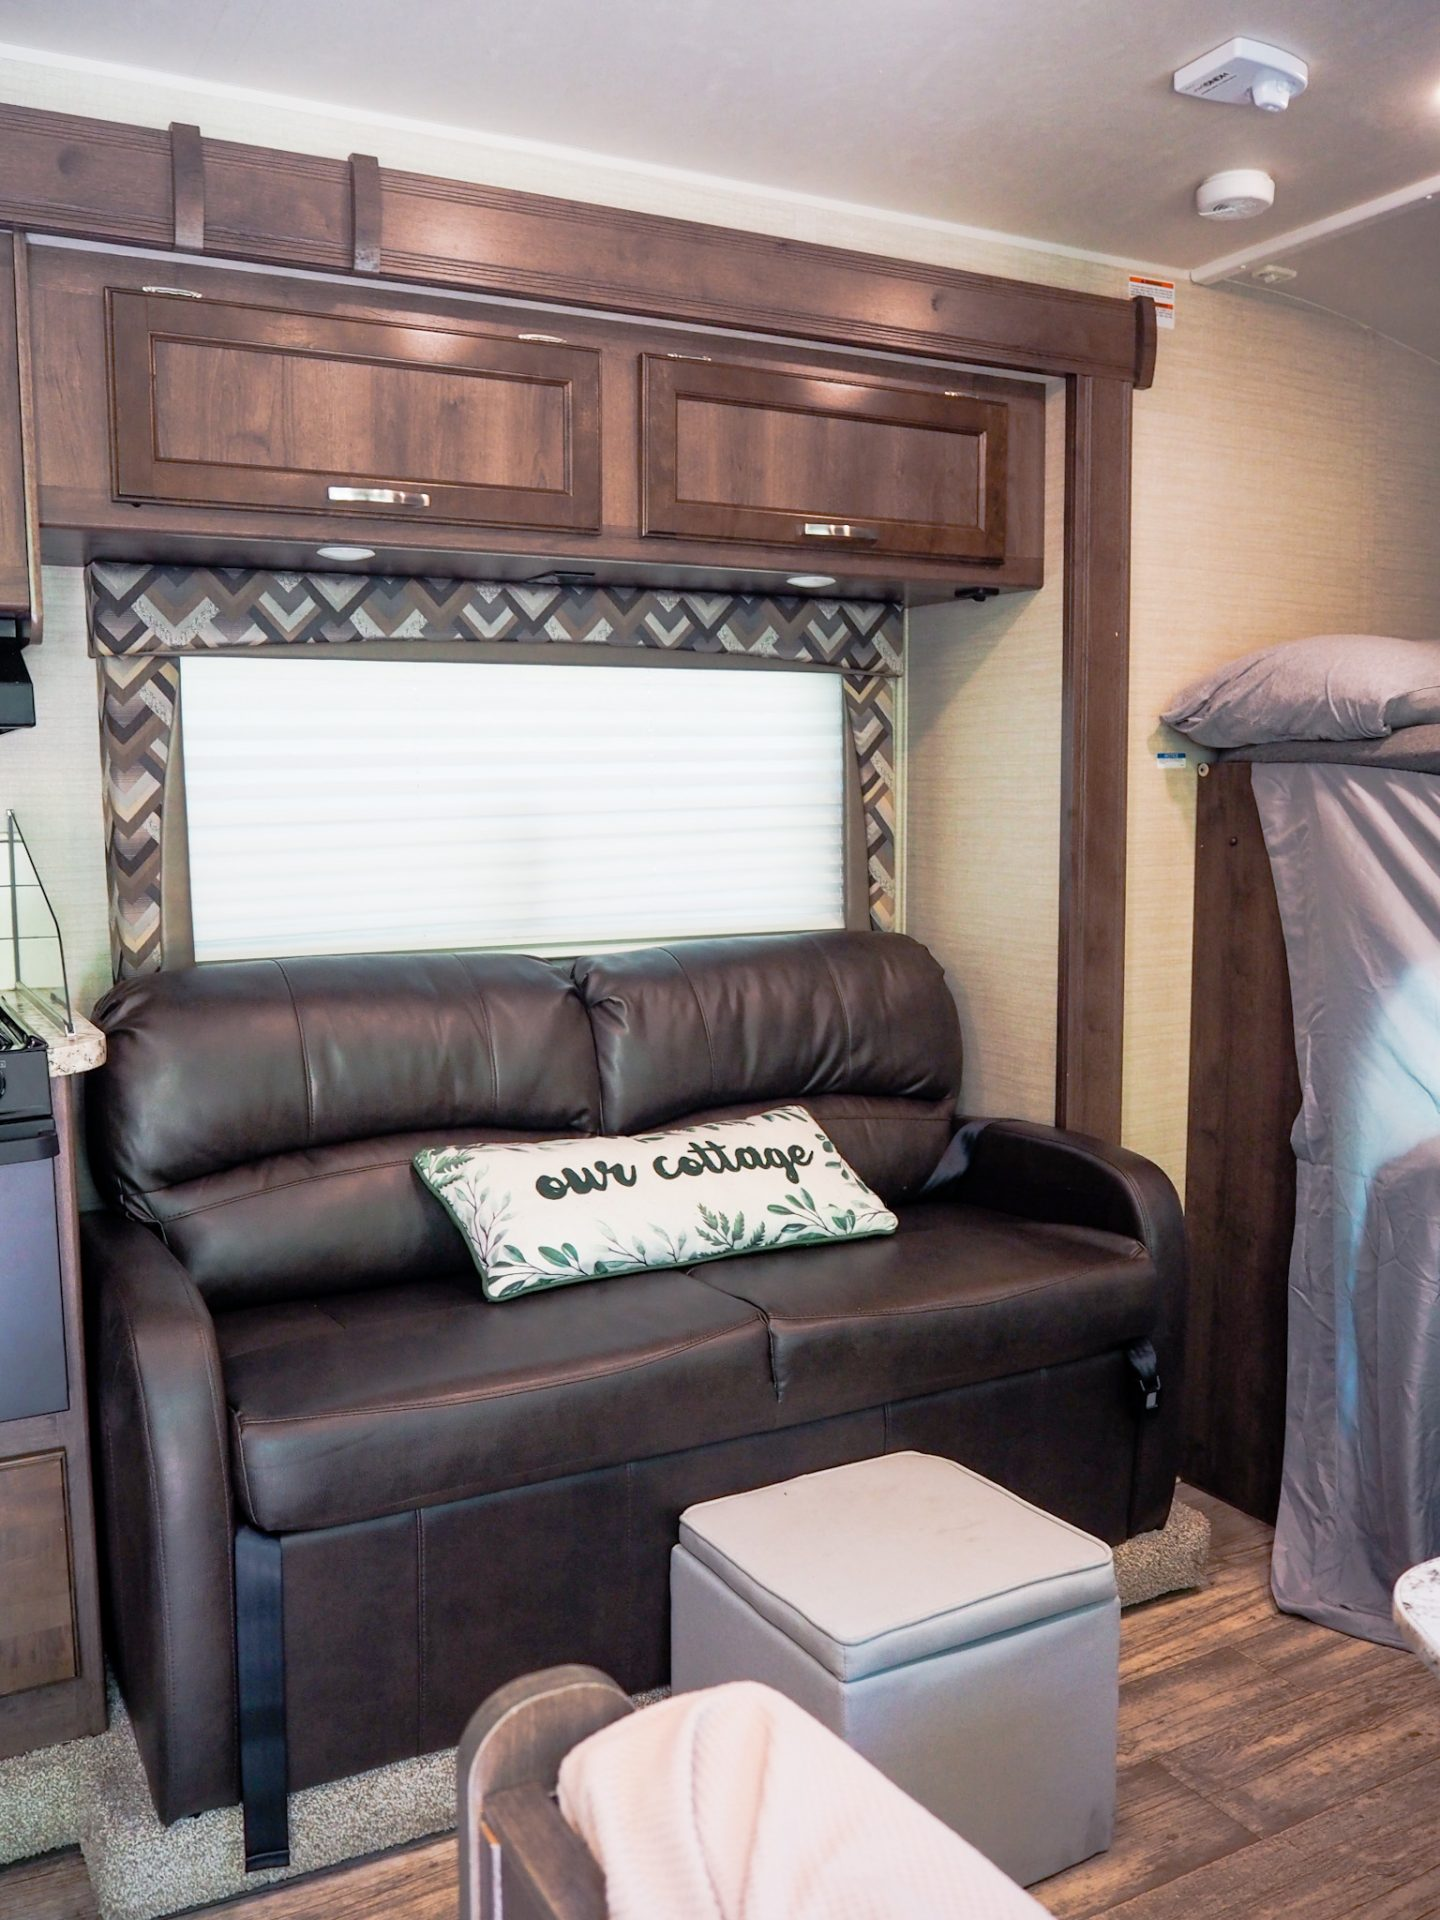 Renting an RV for Fort wilderness at Disney